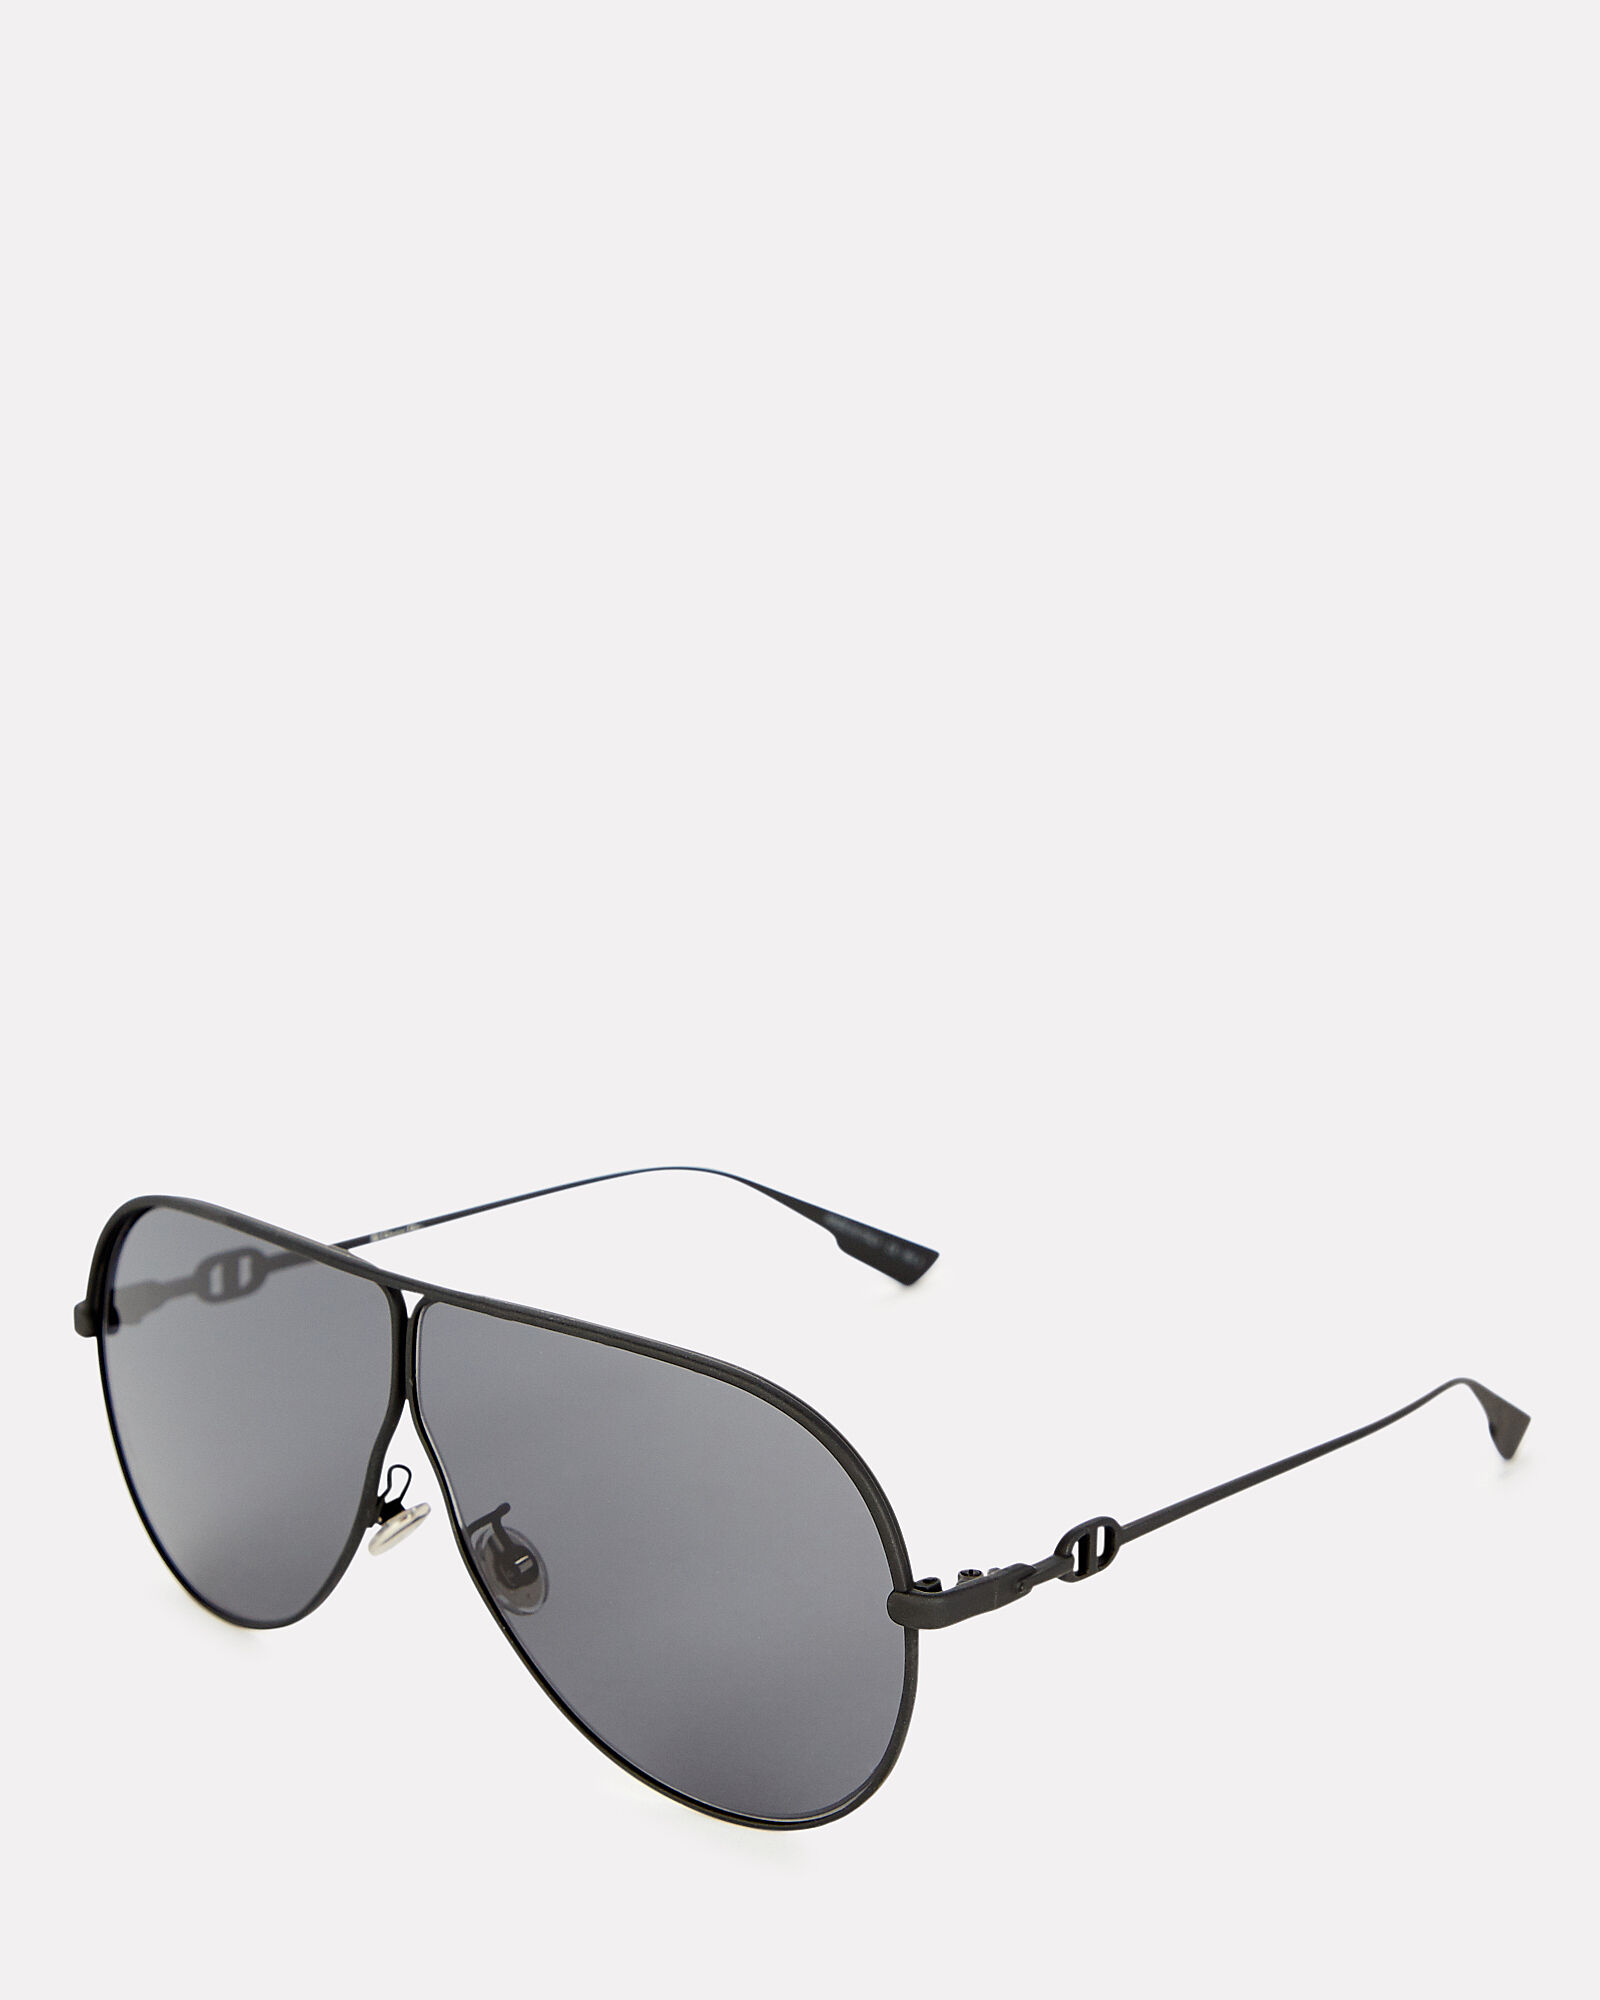 DiorCamp Aviator Sunglasses, BLACK, hi-res